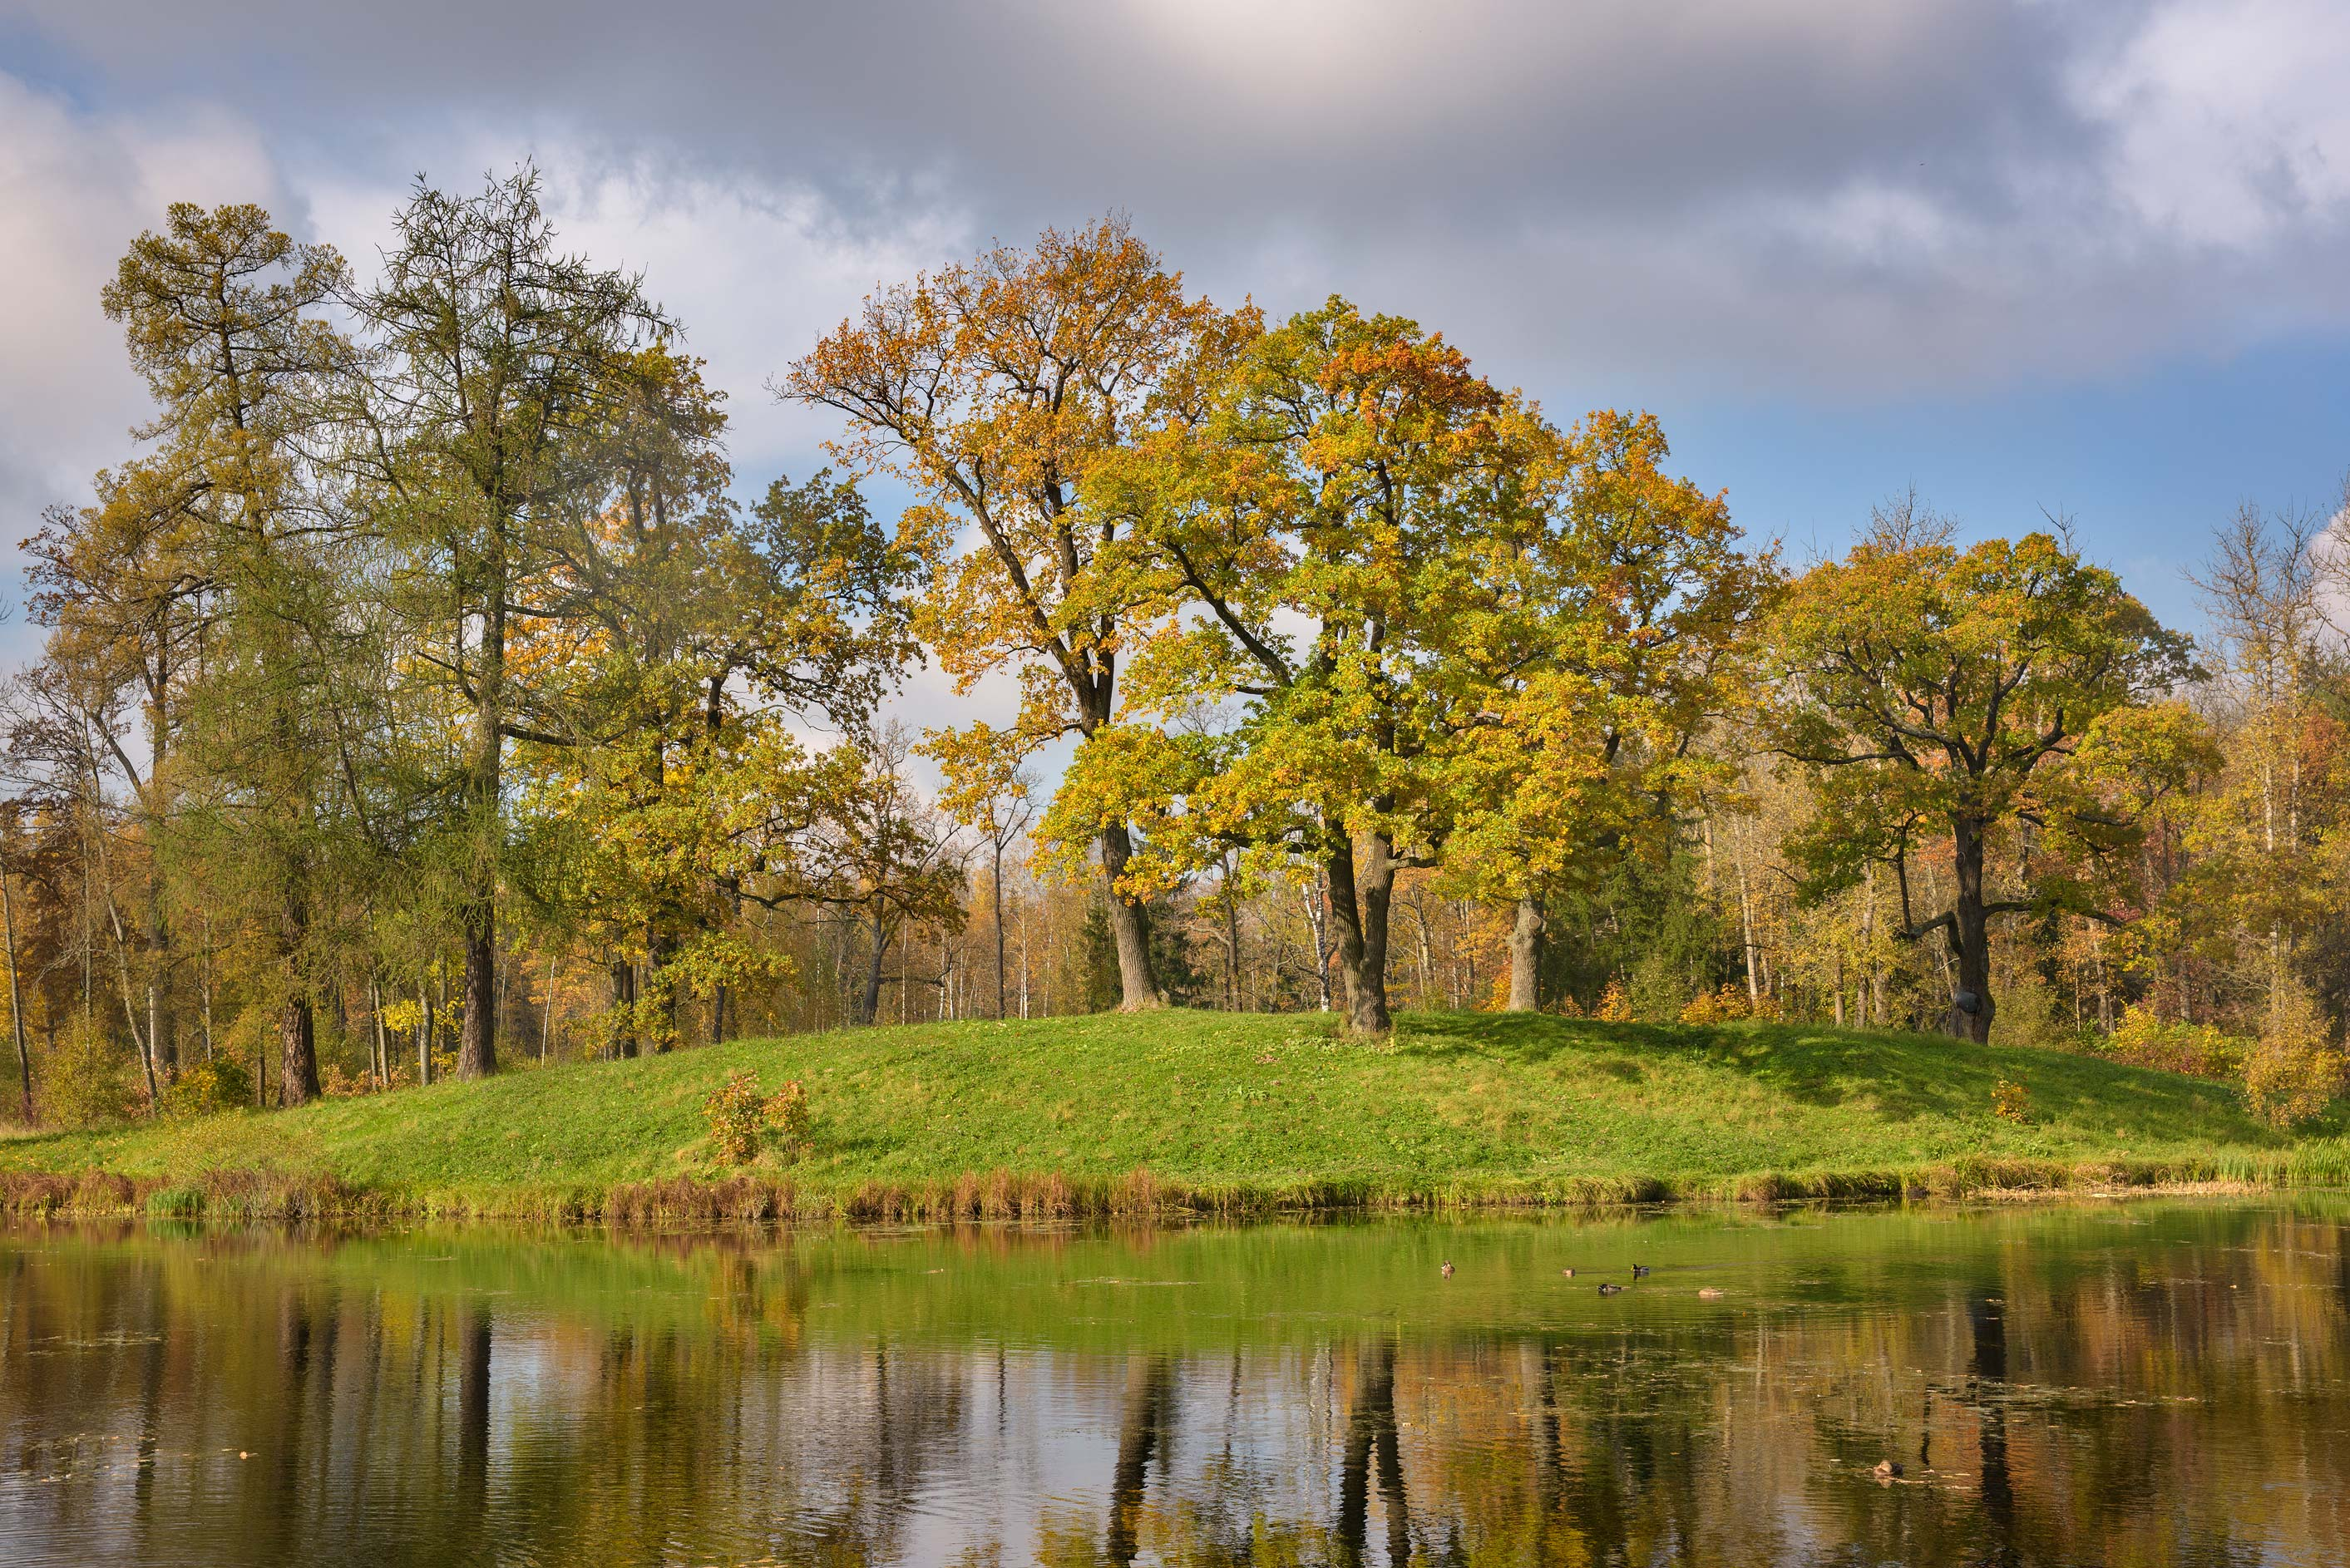 Oaks on a bend of Vittolovsky Shapel Pond in...south from St.Petersburg, Russia